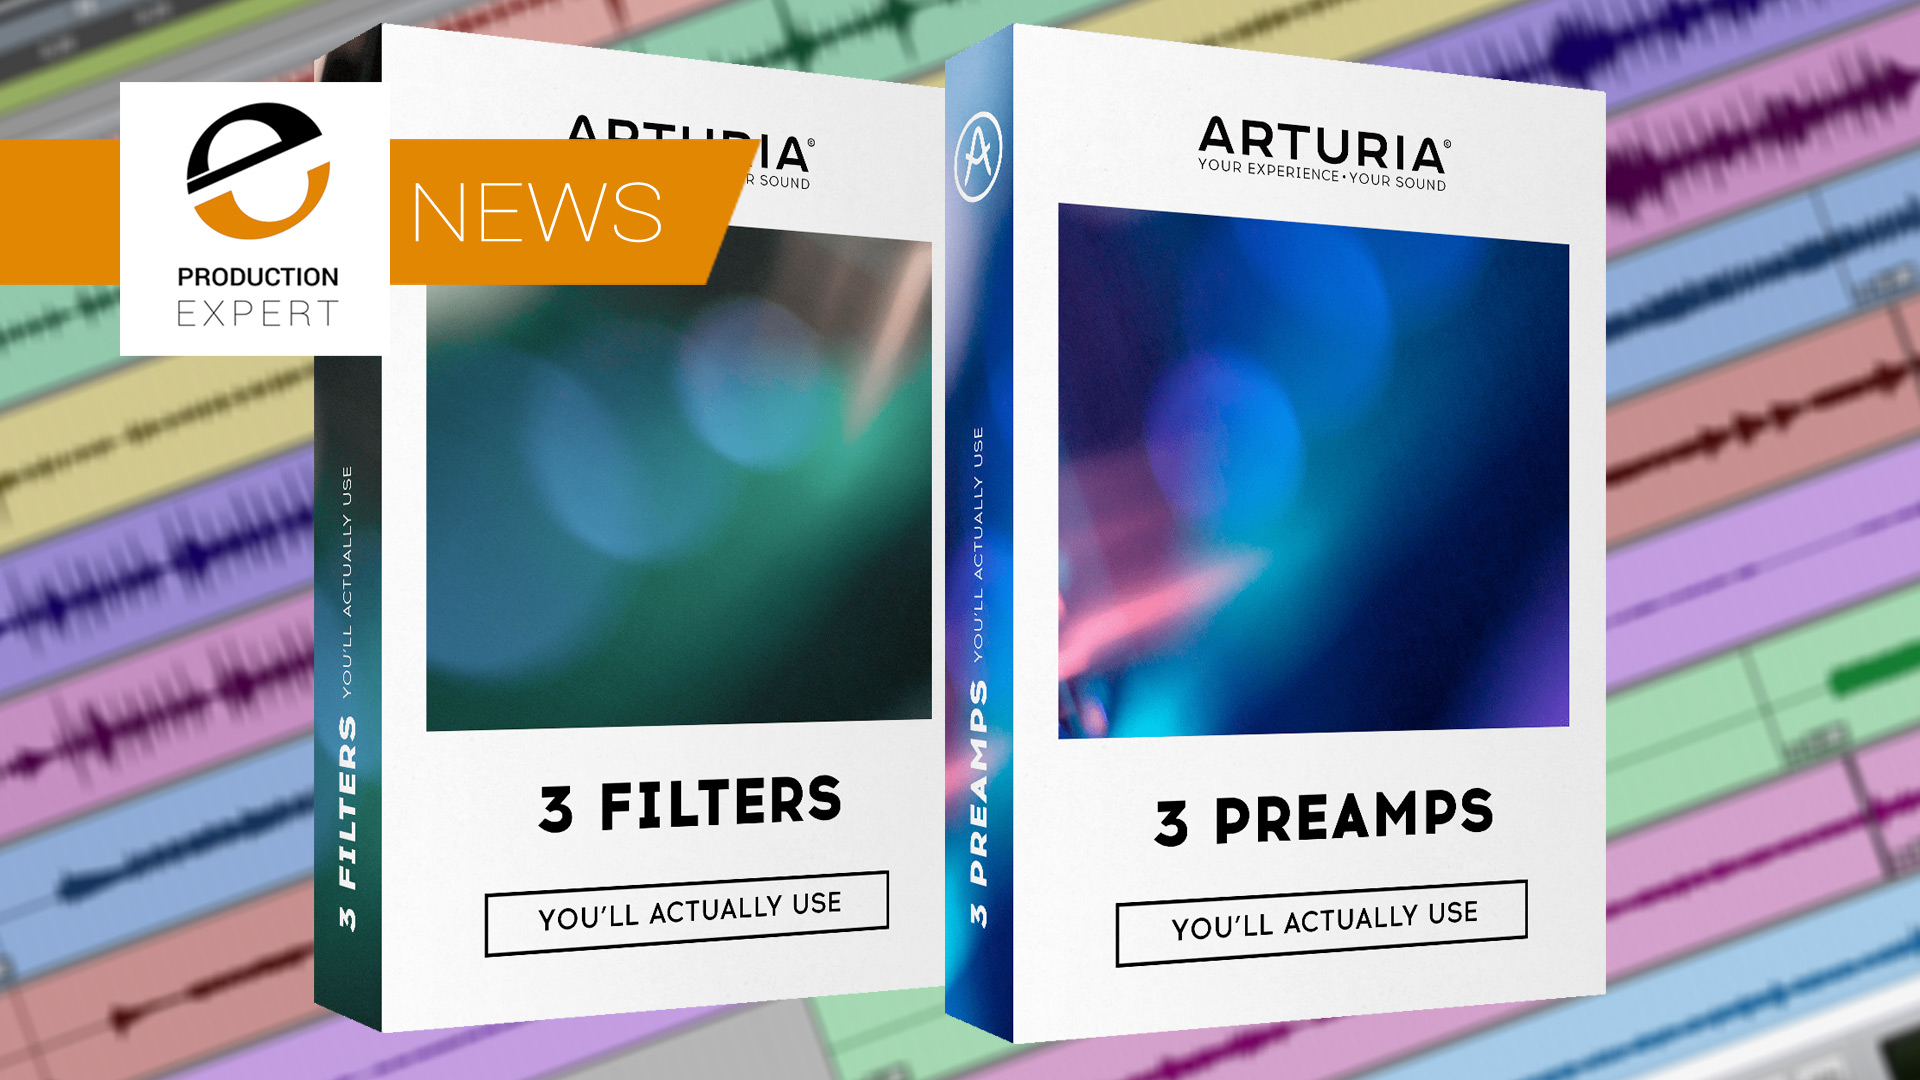 News---Arturia-Release-3-Filters-and-3-Preamp-Emulations.jpg